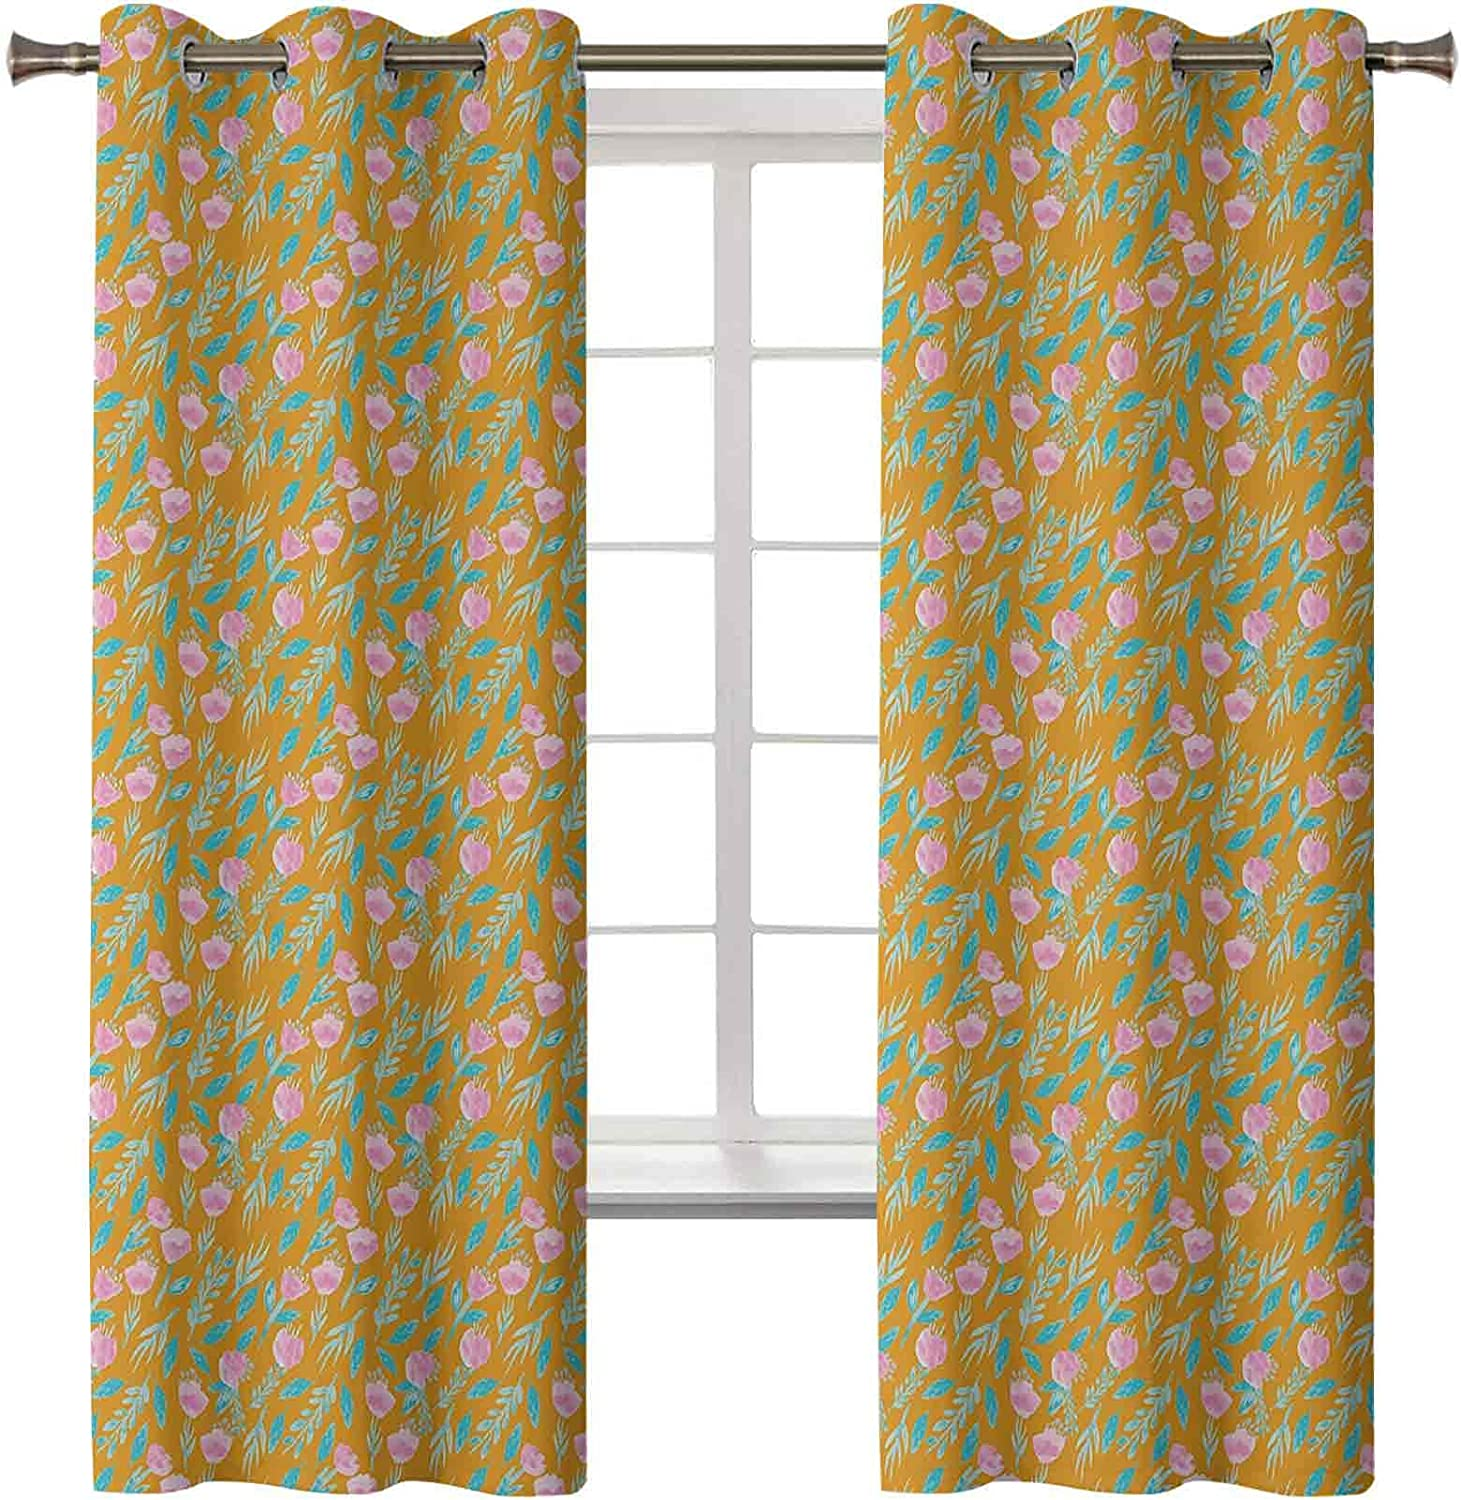 Floral Curtains Drapes Watercolor Boston Mall discount Flower Branches Artwork of